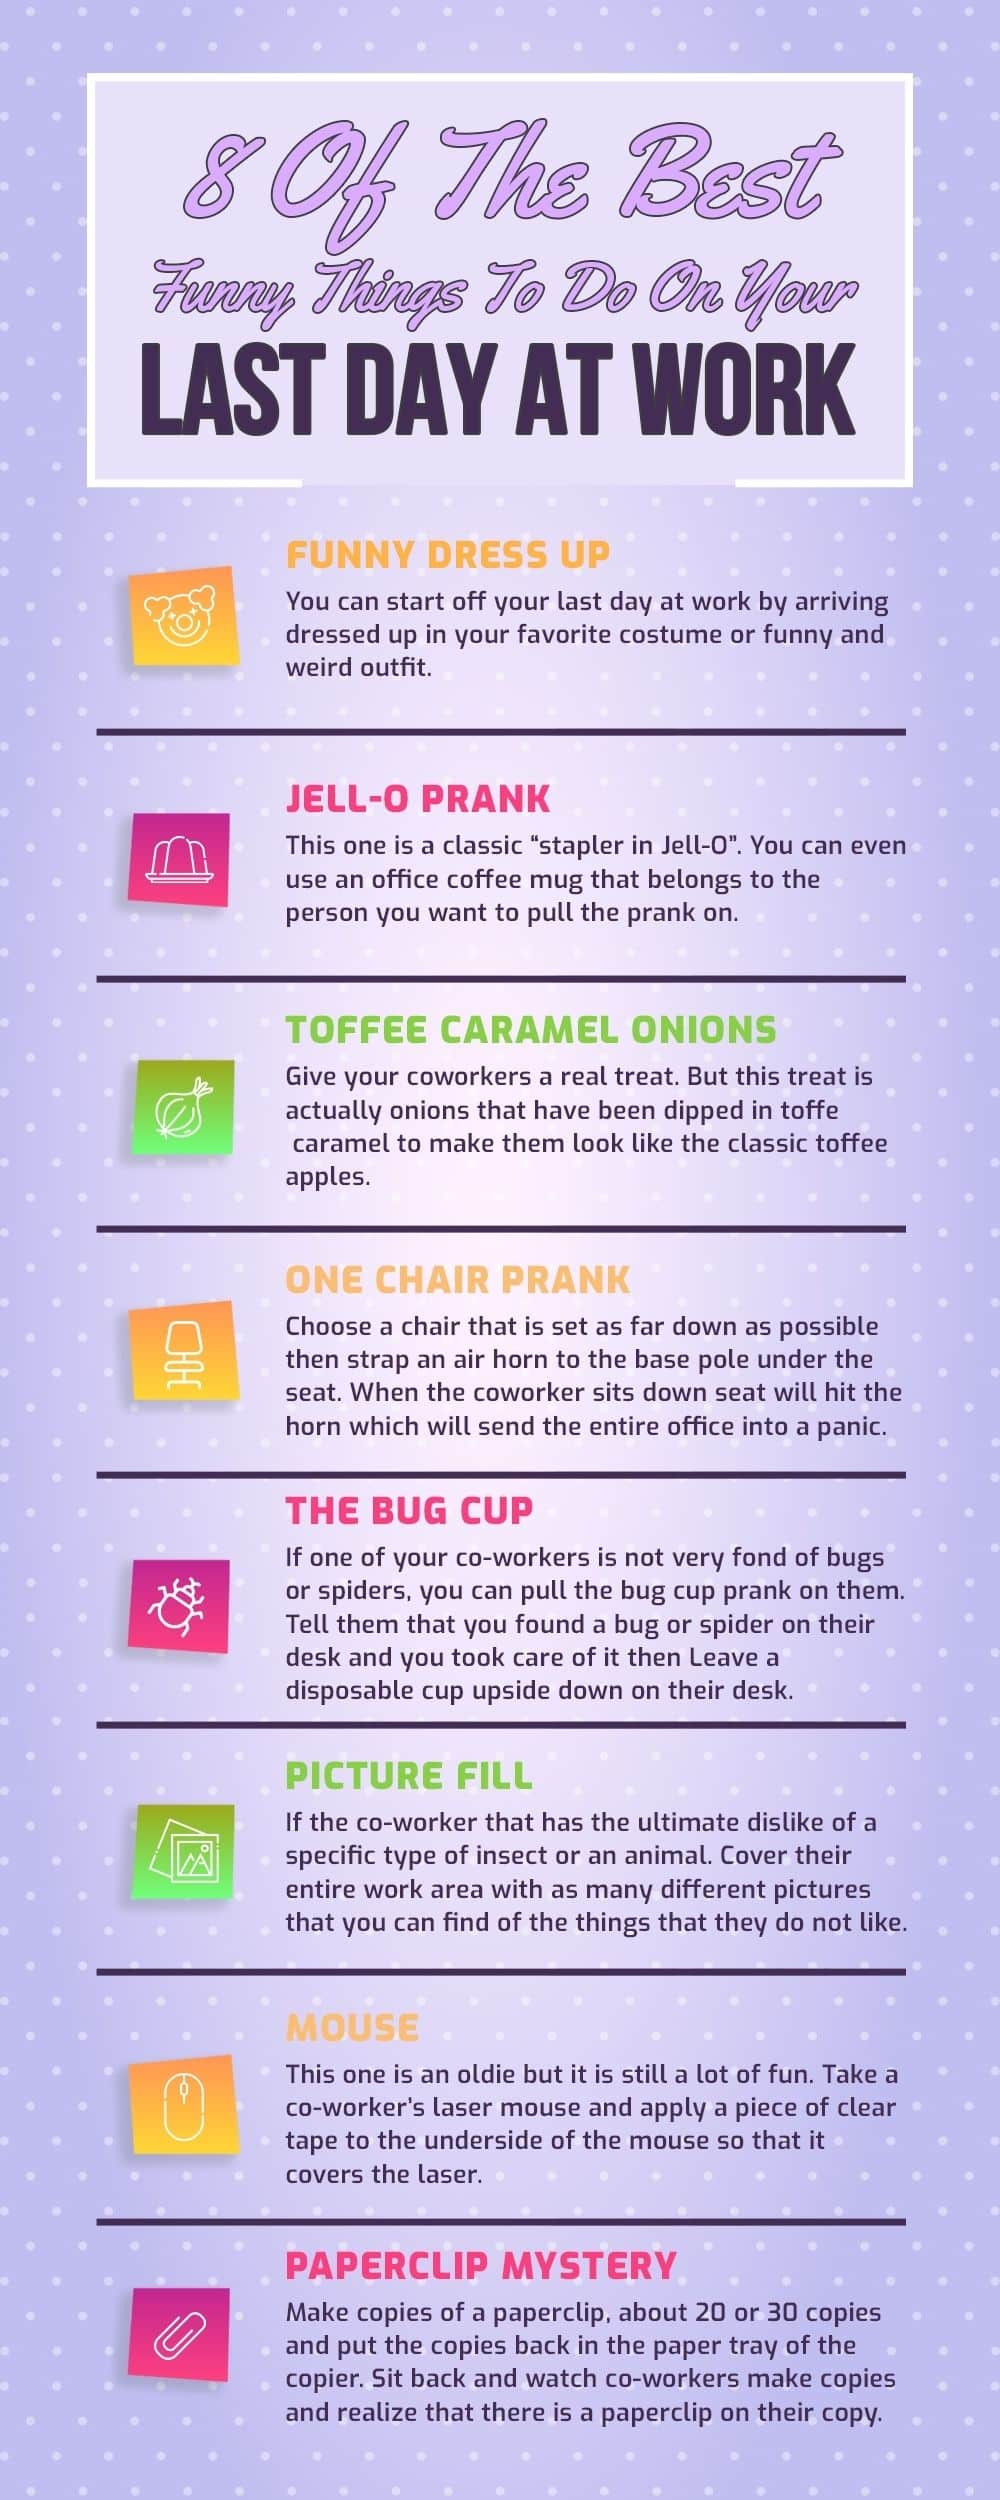 Infographic 8 of The Best Funny things to do on your last day at work